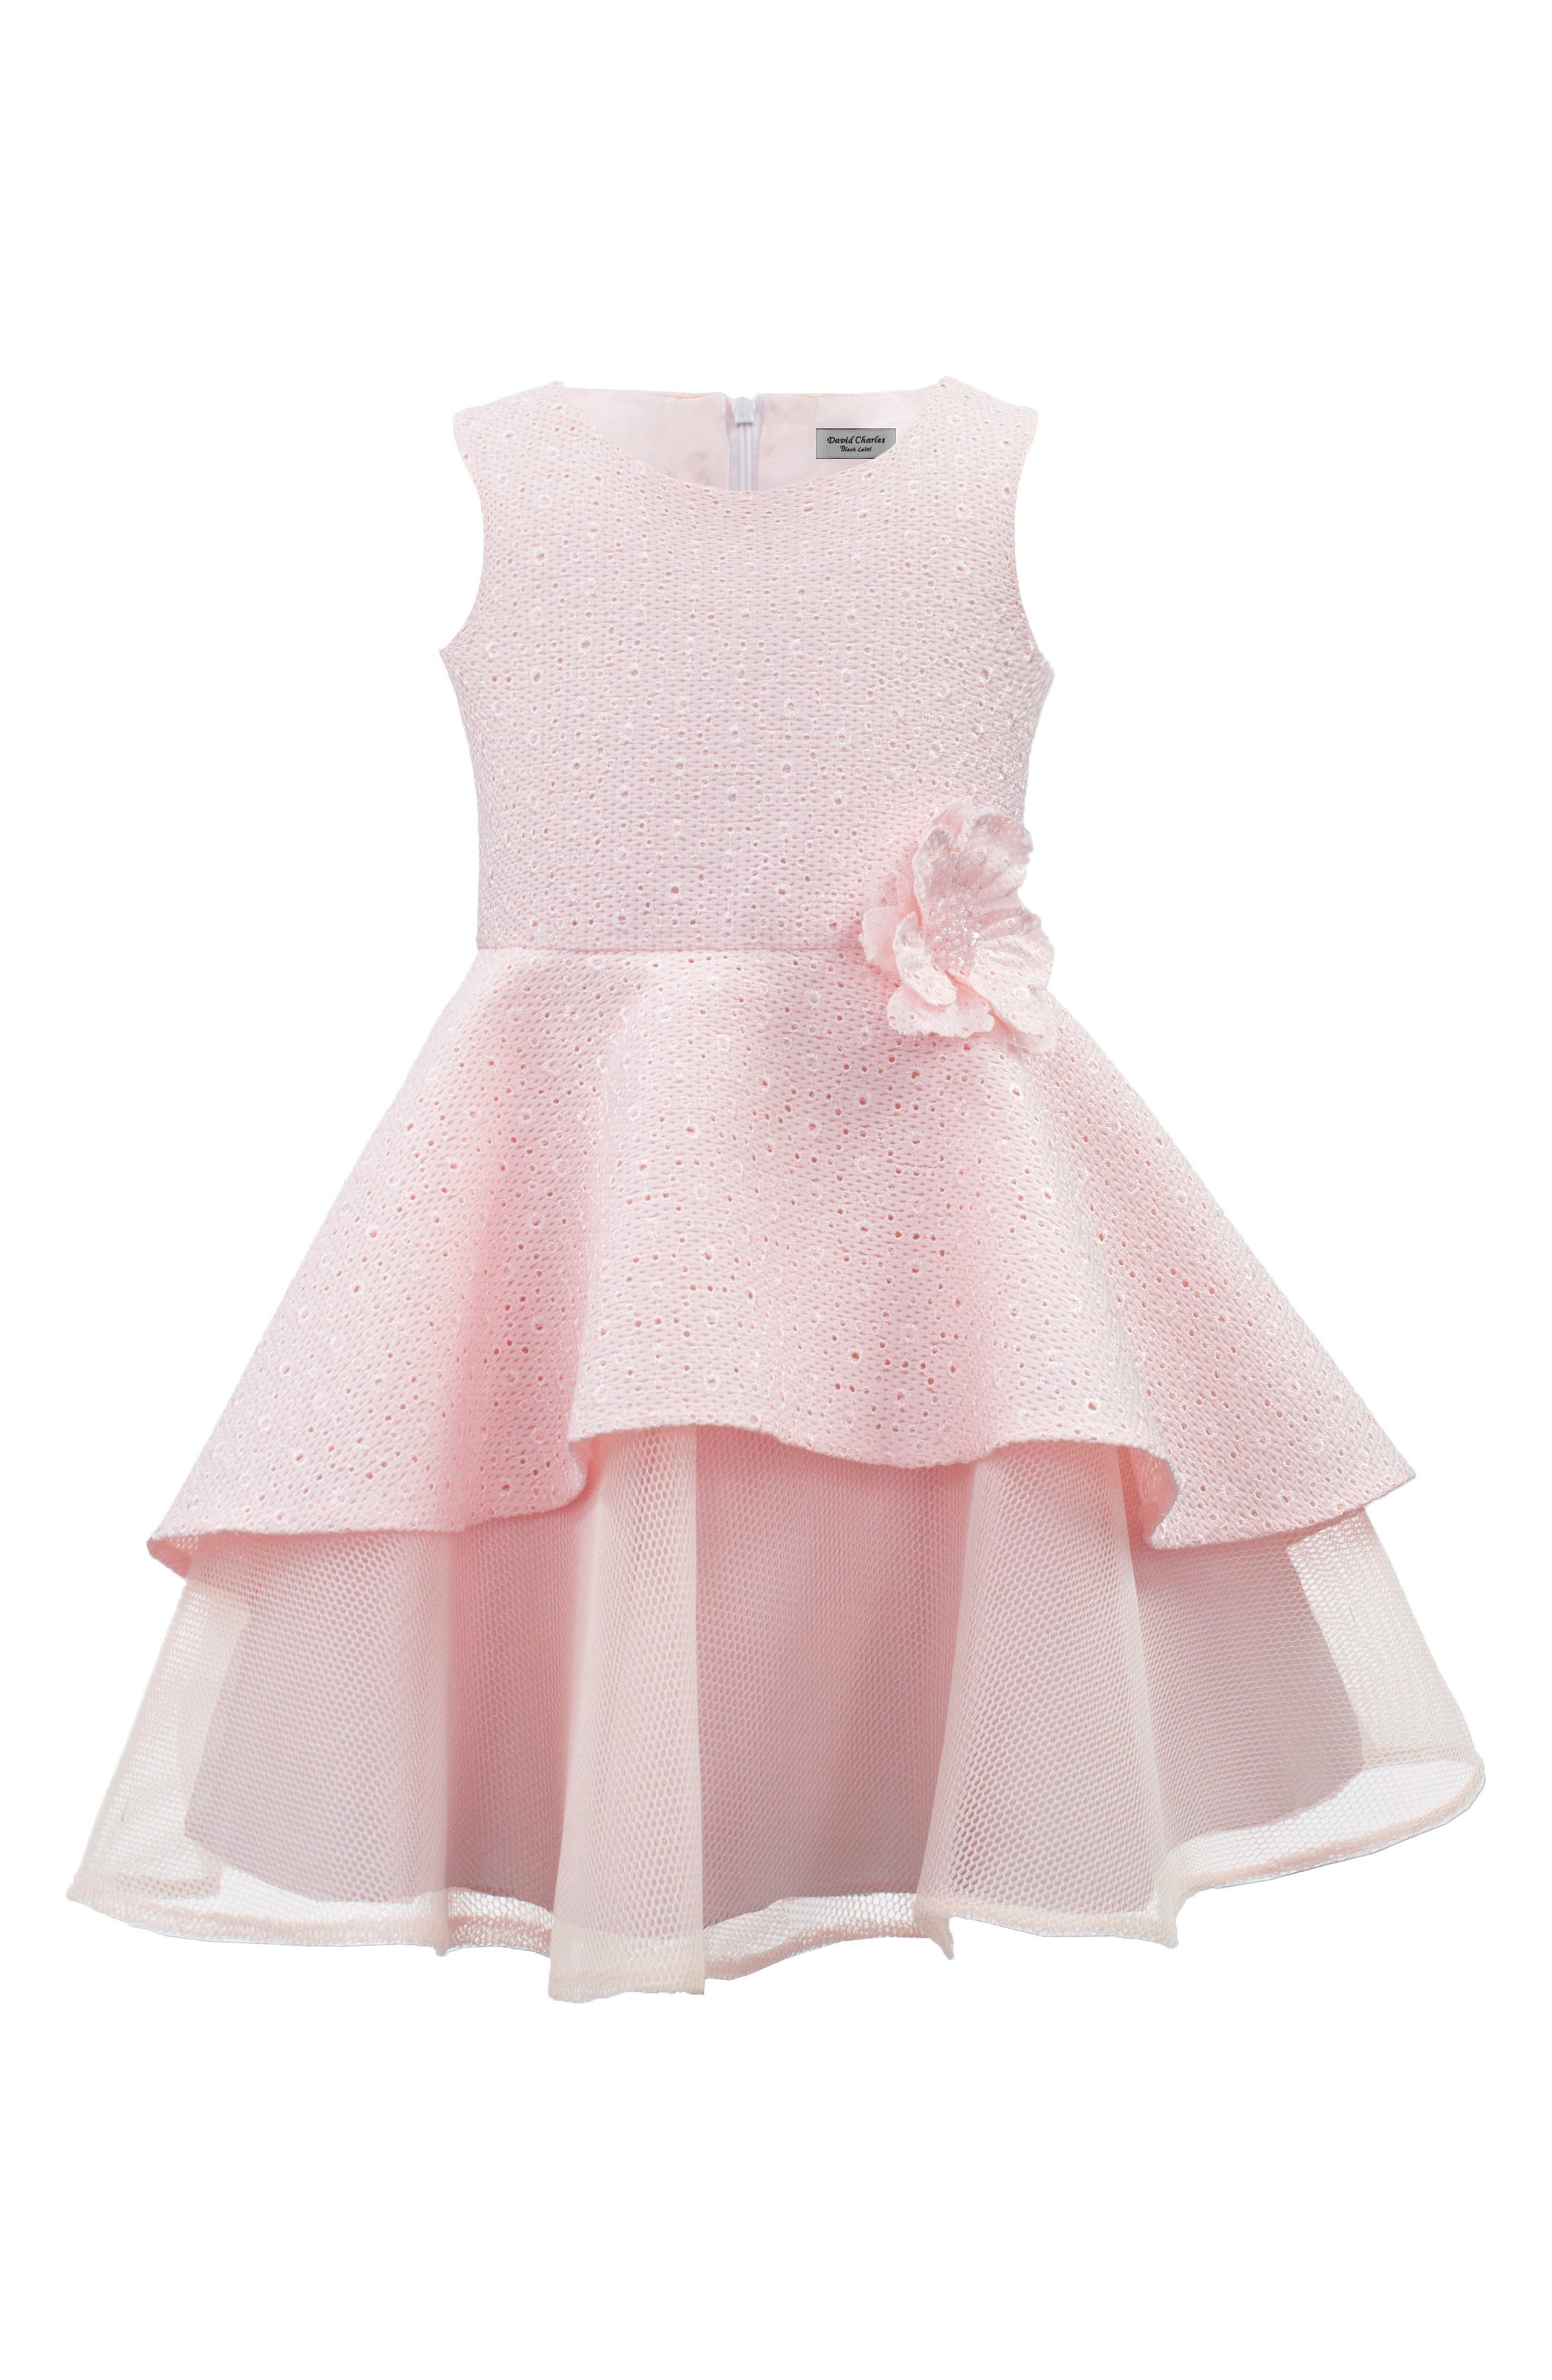 Broderie Anglaise Techno Mesh Dress,                         Main,                         color, Pink